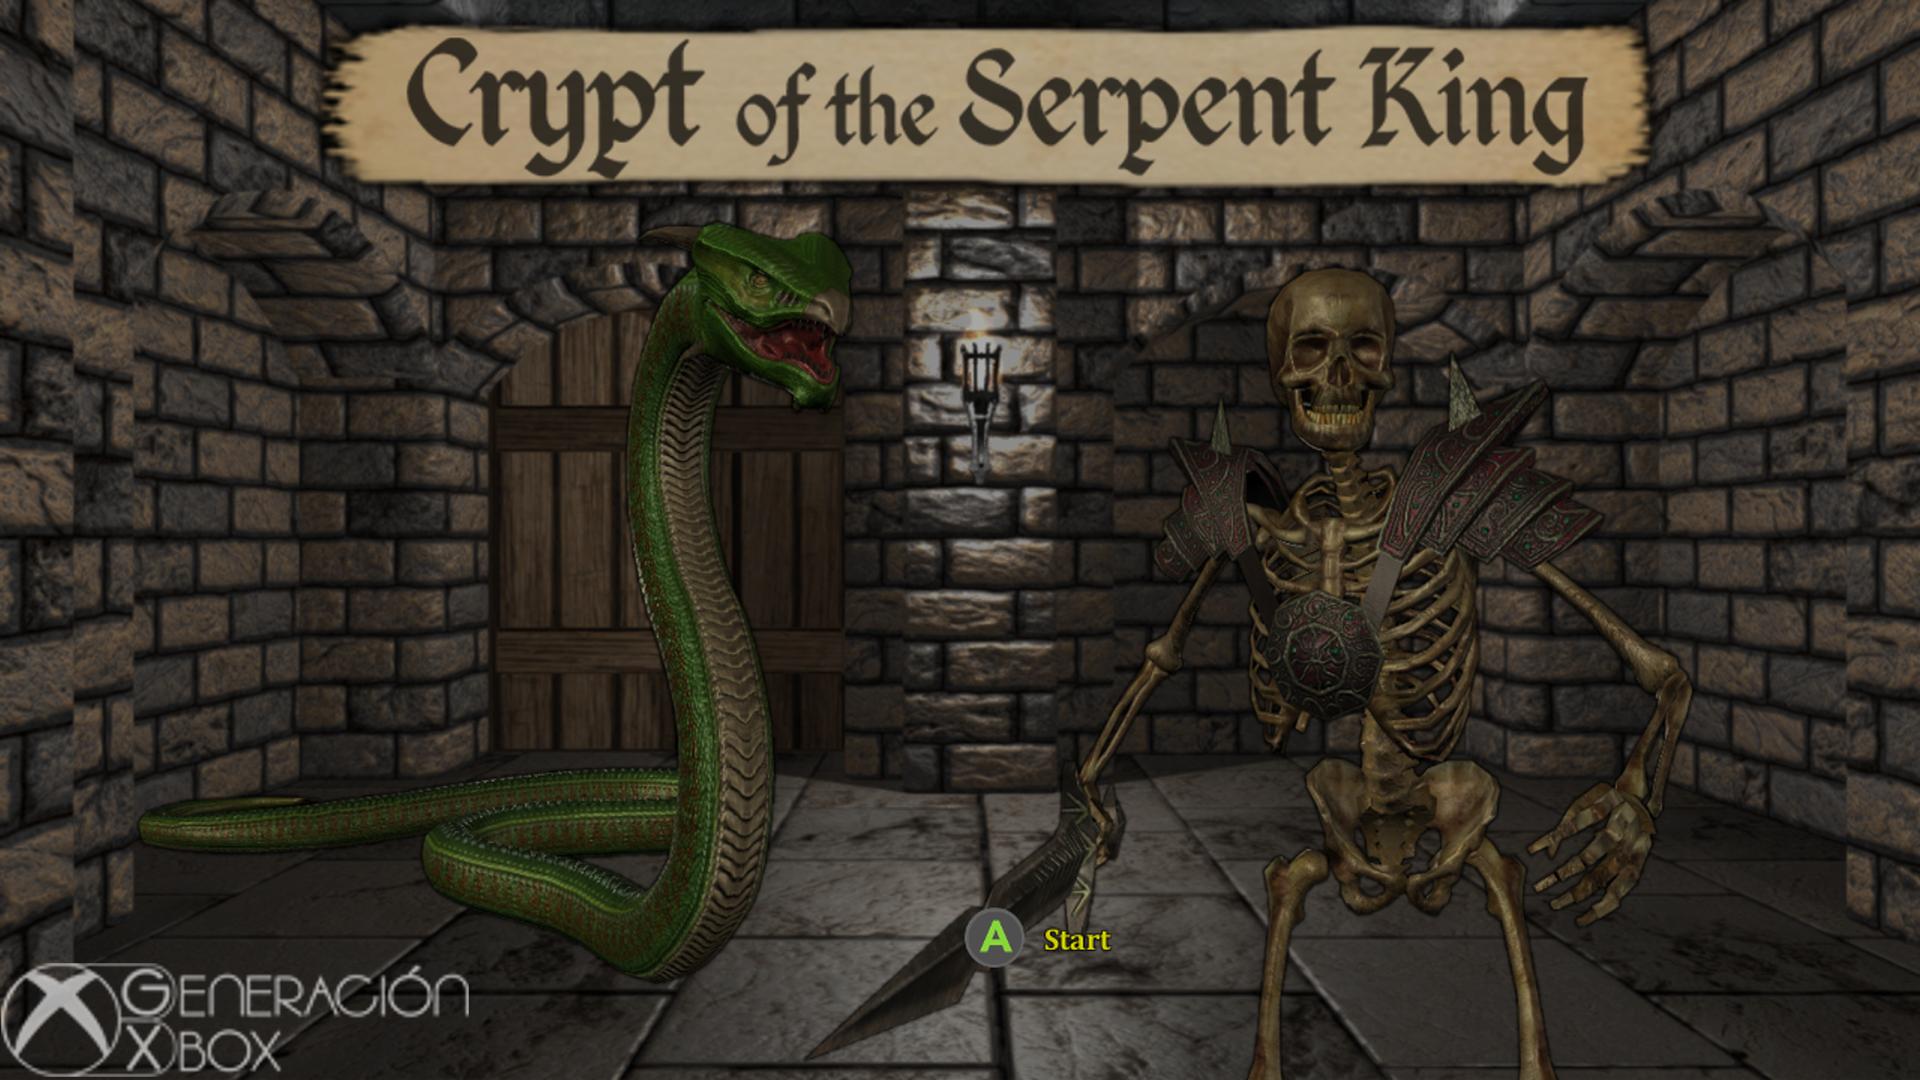 Análisis de Crypt of the Serpent King 1